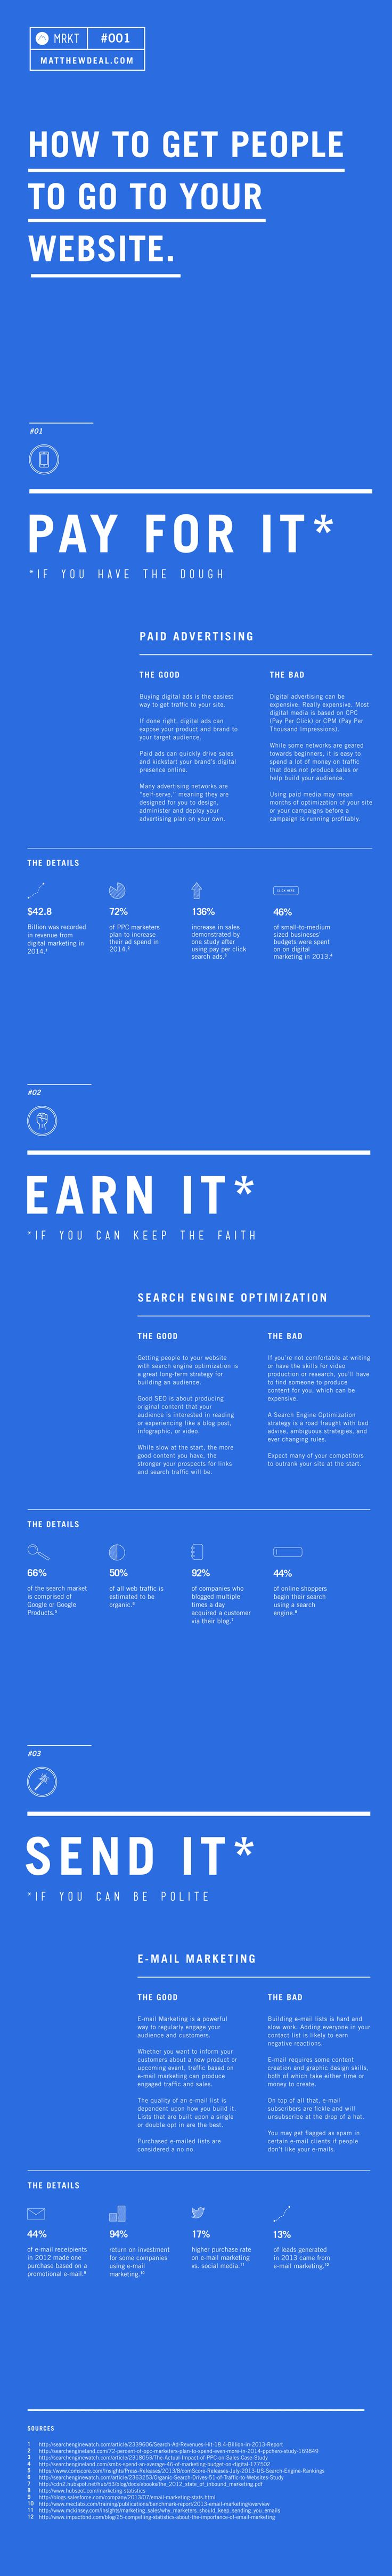 How To Get People To Your Website In this infographic (produced by matthewdeal), you'll learn the basics of digital marketing, specifically about 3 internet marketing techniques to get people to your website, blog or online store. Latest News & Trends in #digitalmarketing 2015 | http://webworksagency.com